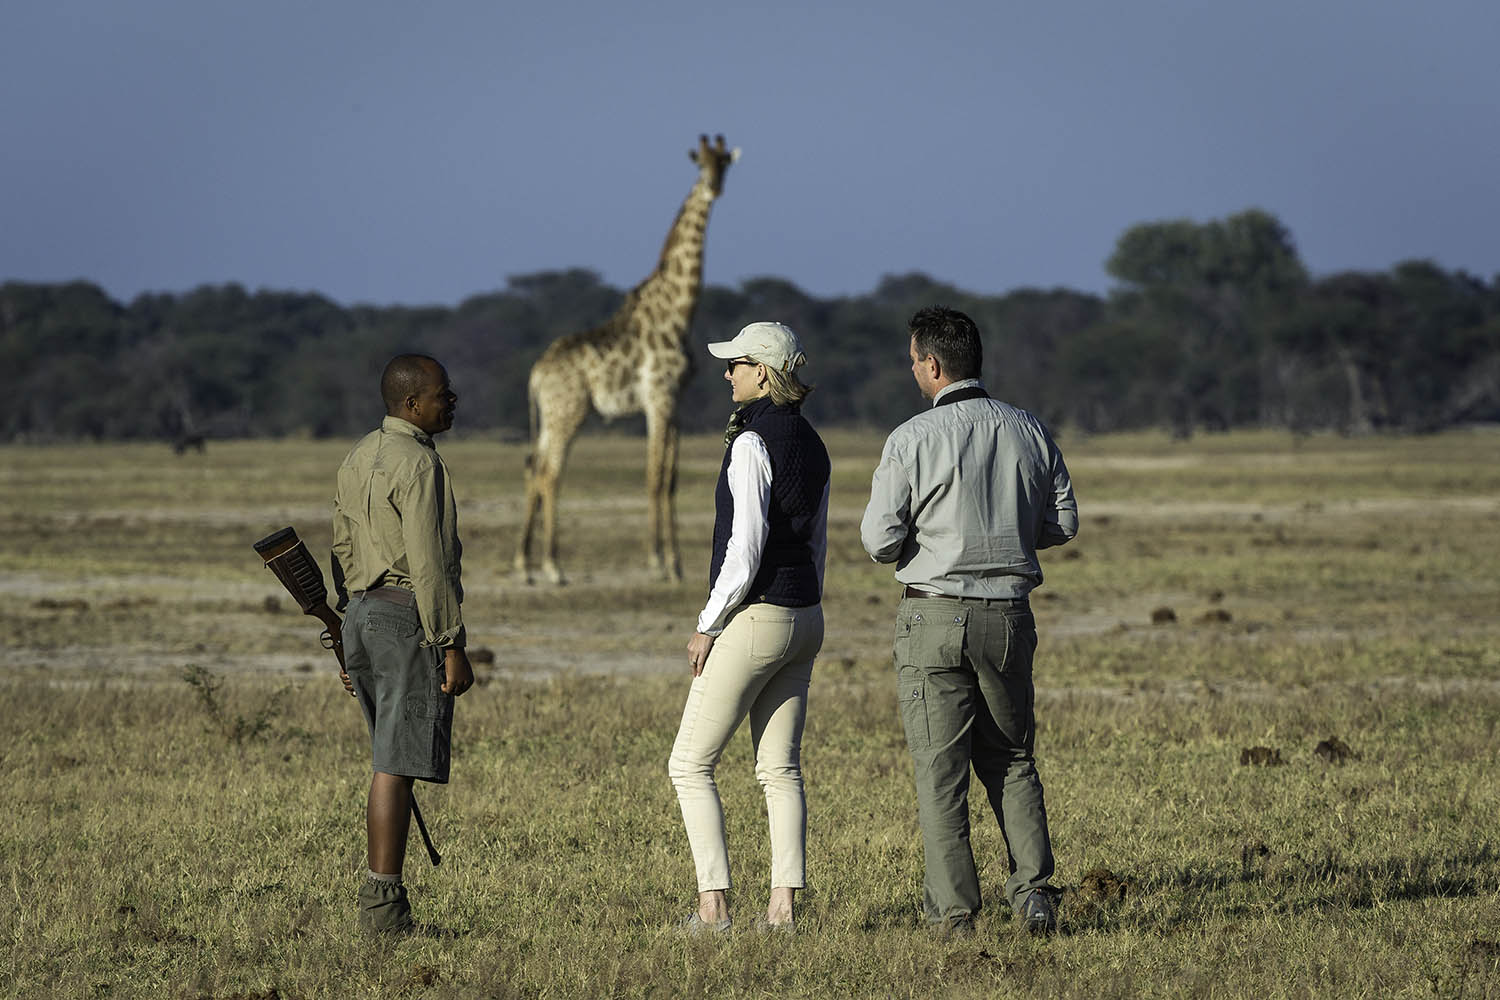 linkwasha camp hwange-national-park-zimbabwe-lodges-luxury-accommodation-wilderness-guided-walking-safari-giraffe